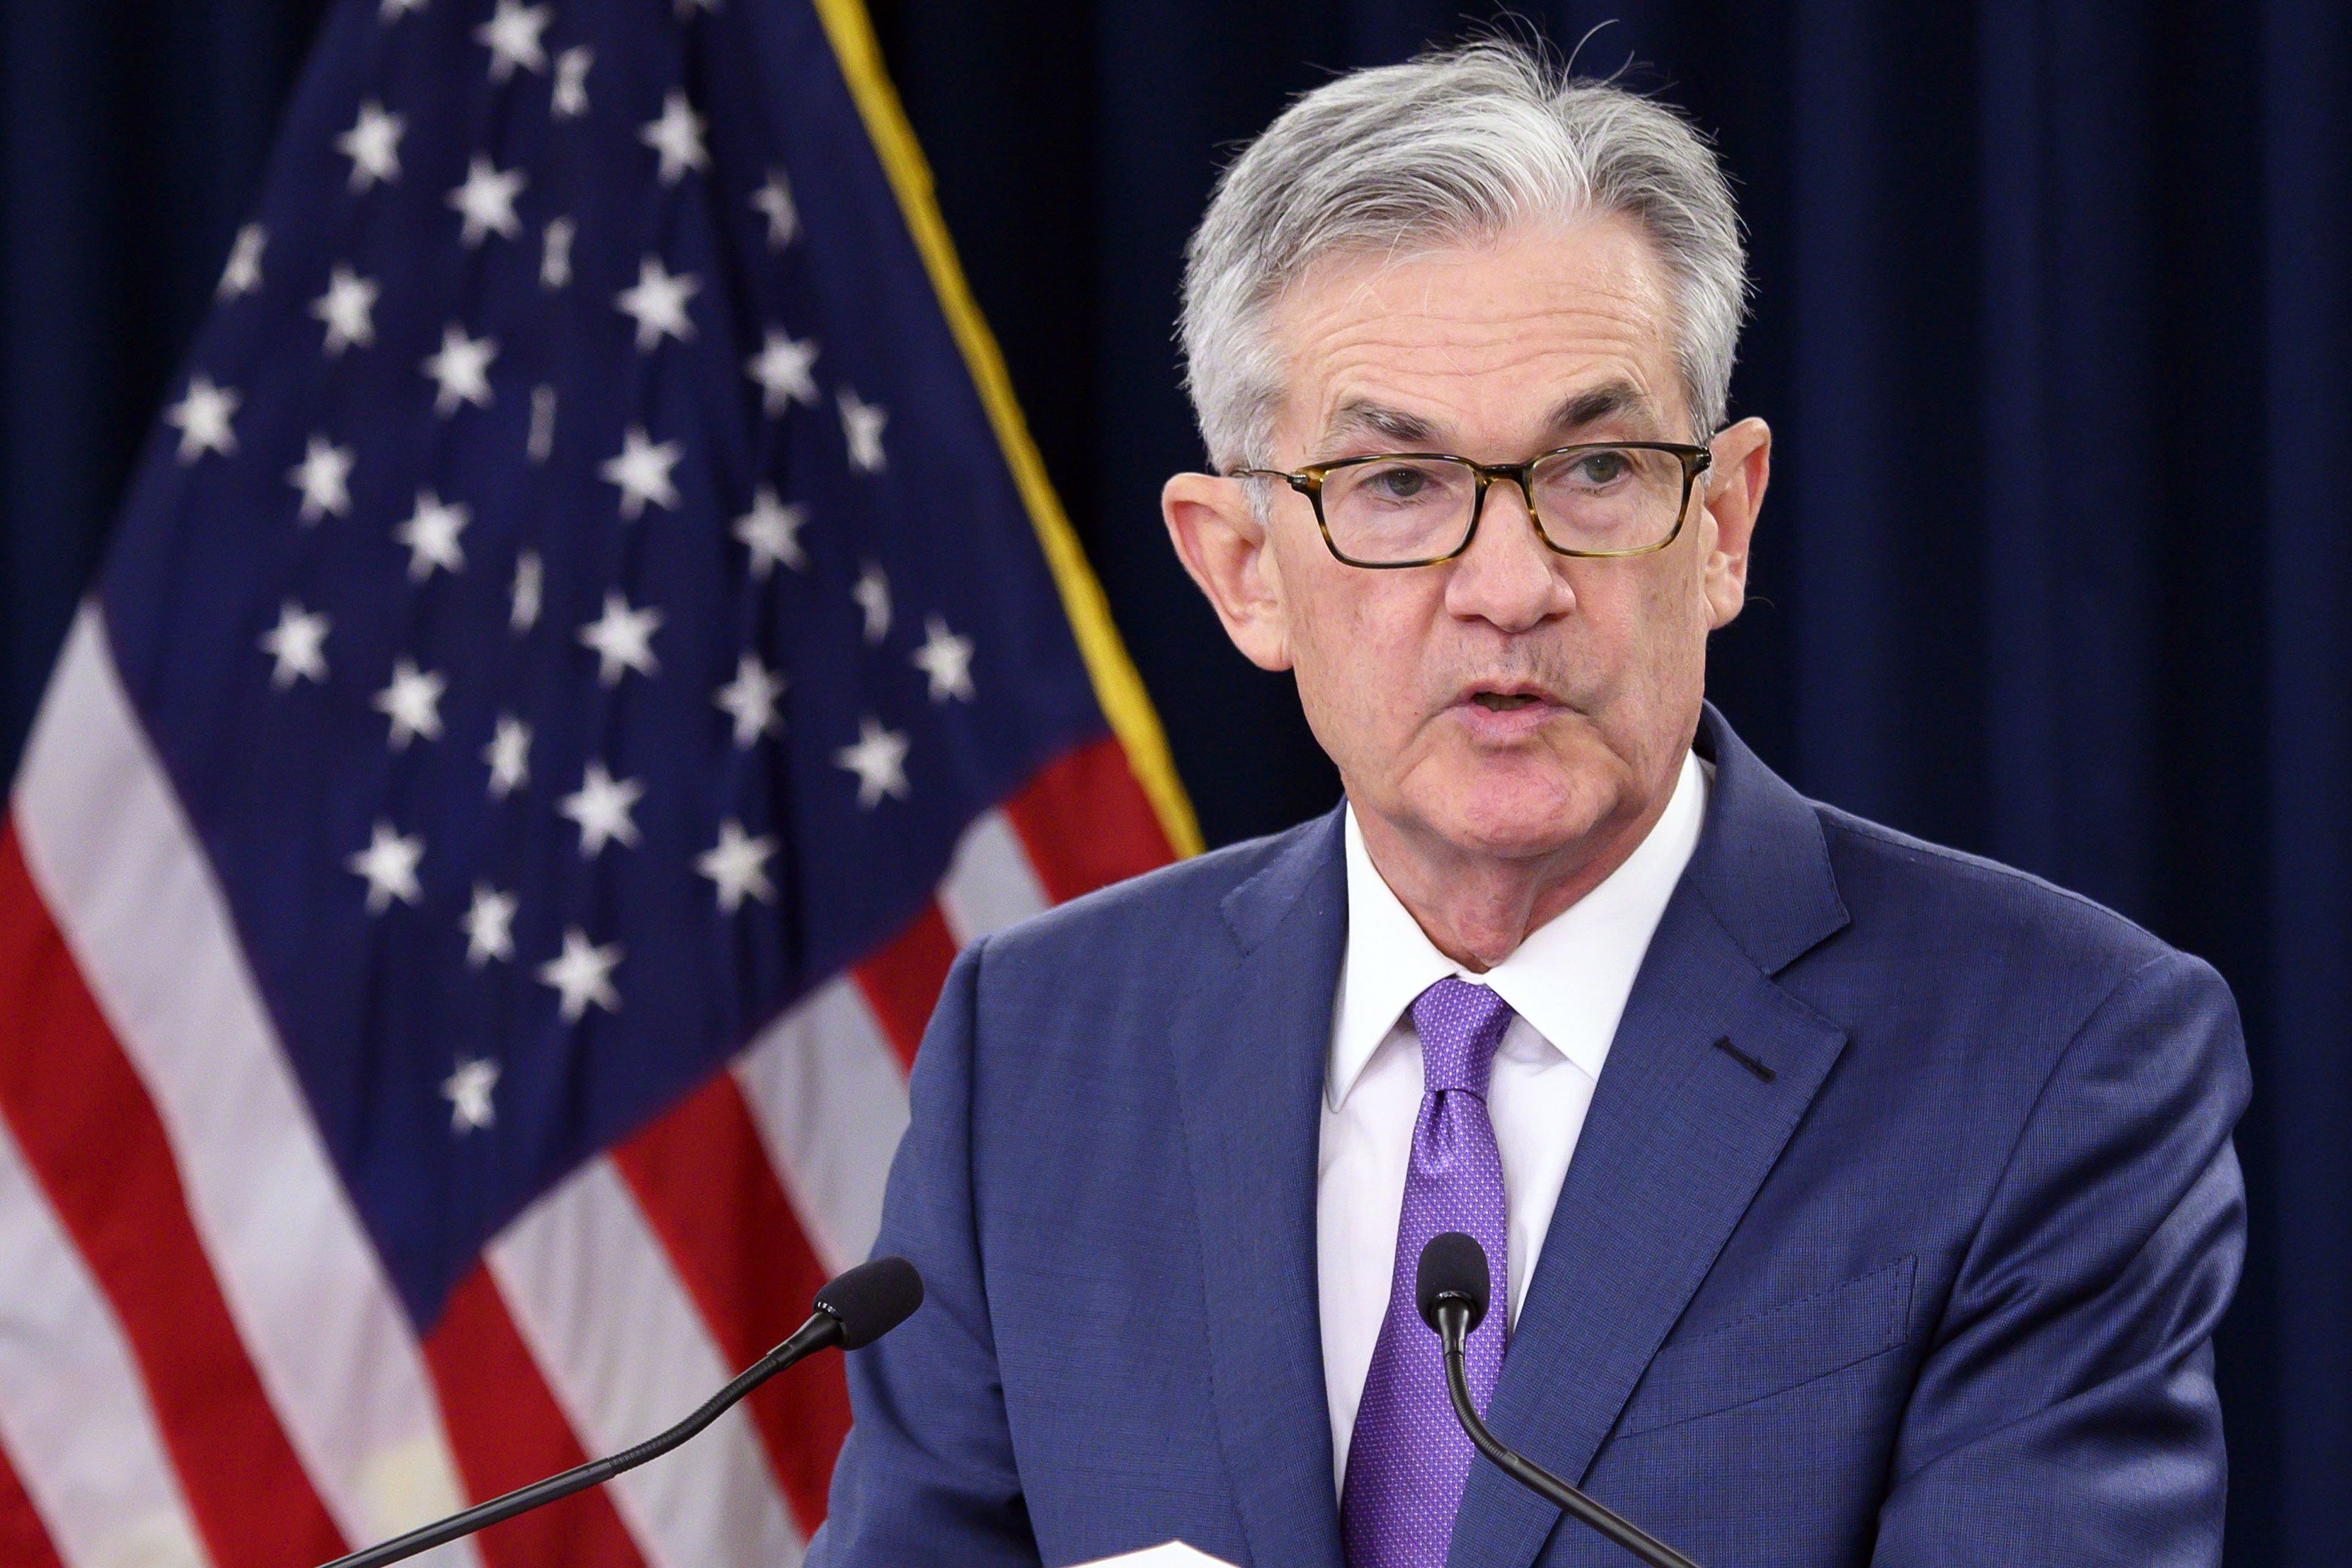 Interest rates cut by 25 basis points after FOMC Meeting